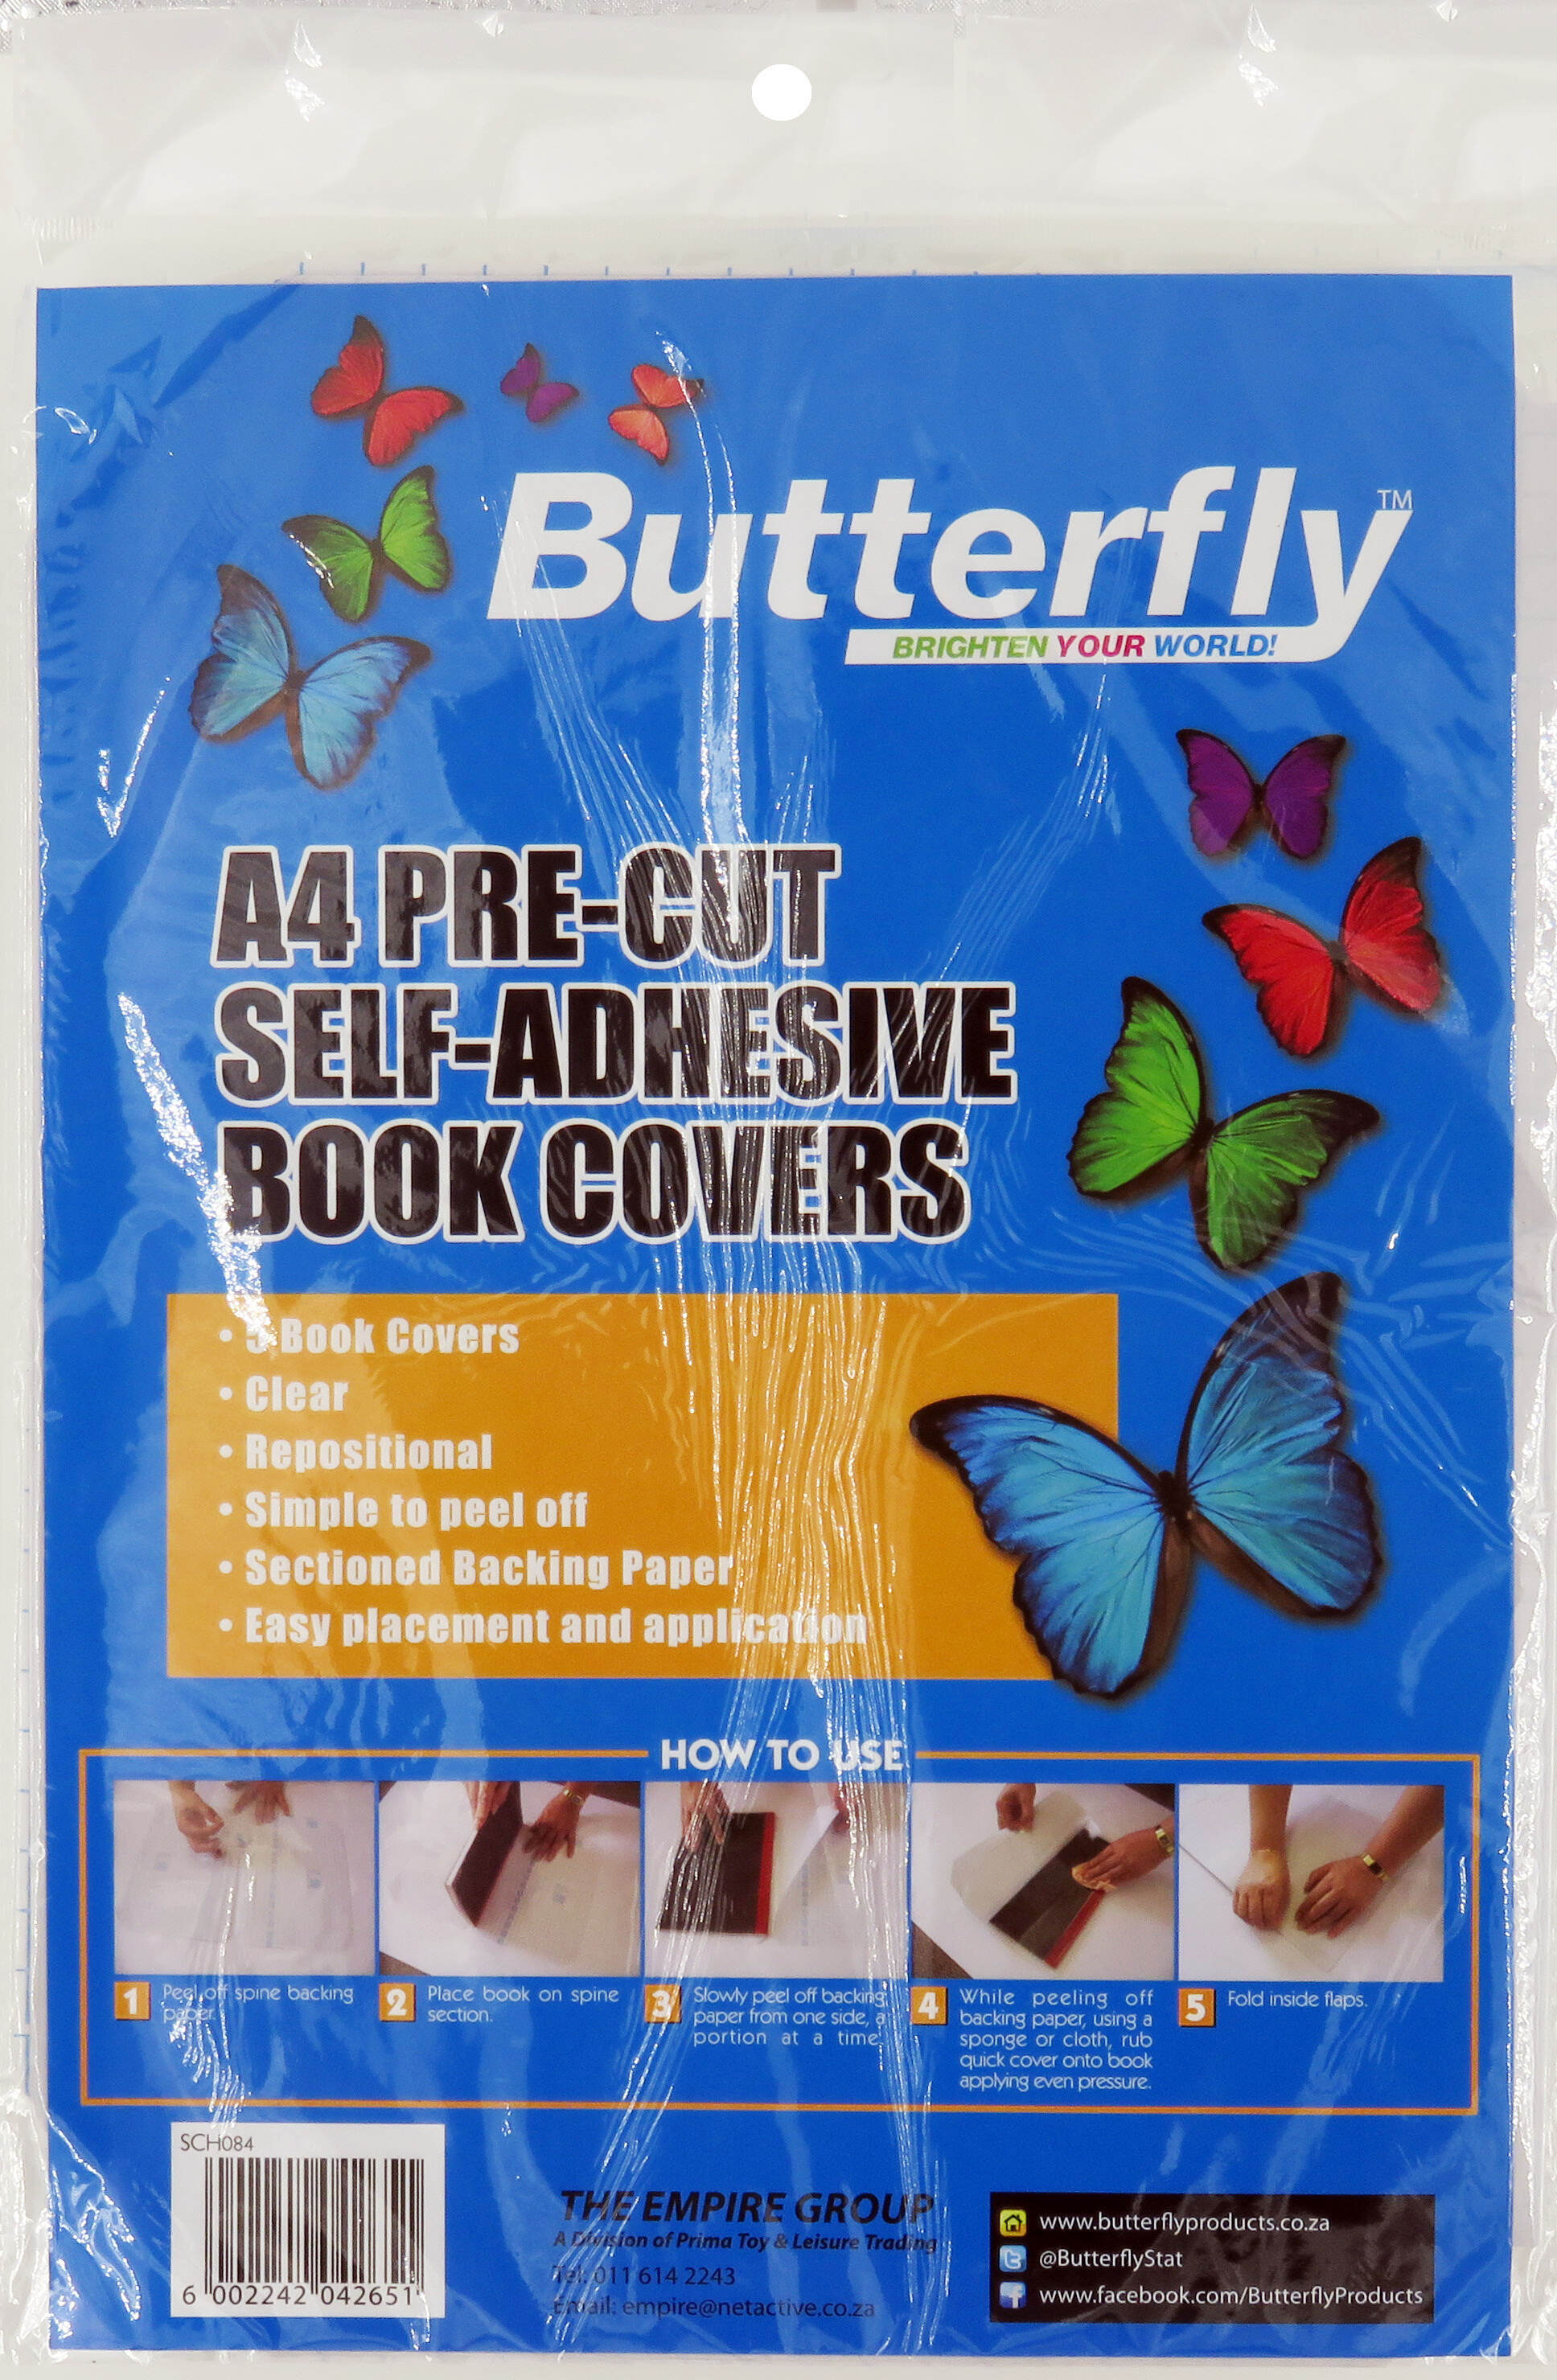 A4 Precut Self-Adhesive Book Covers - Clear - 5 Pack 70 Micron